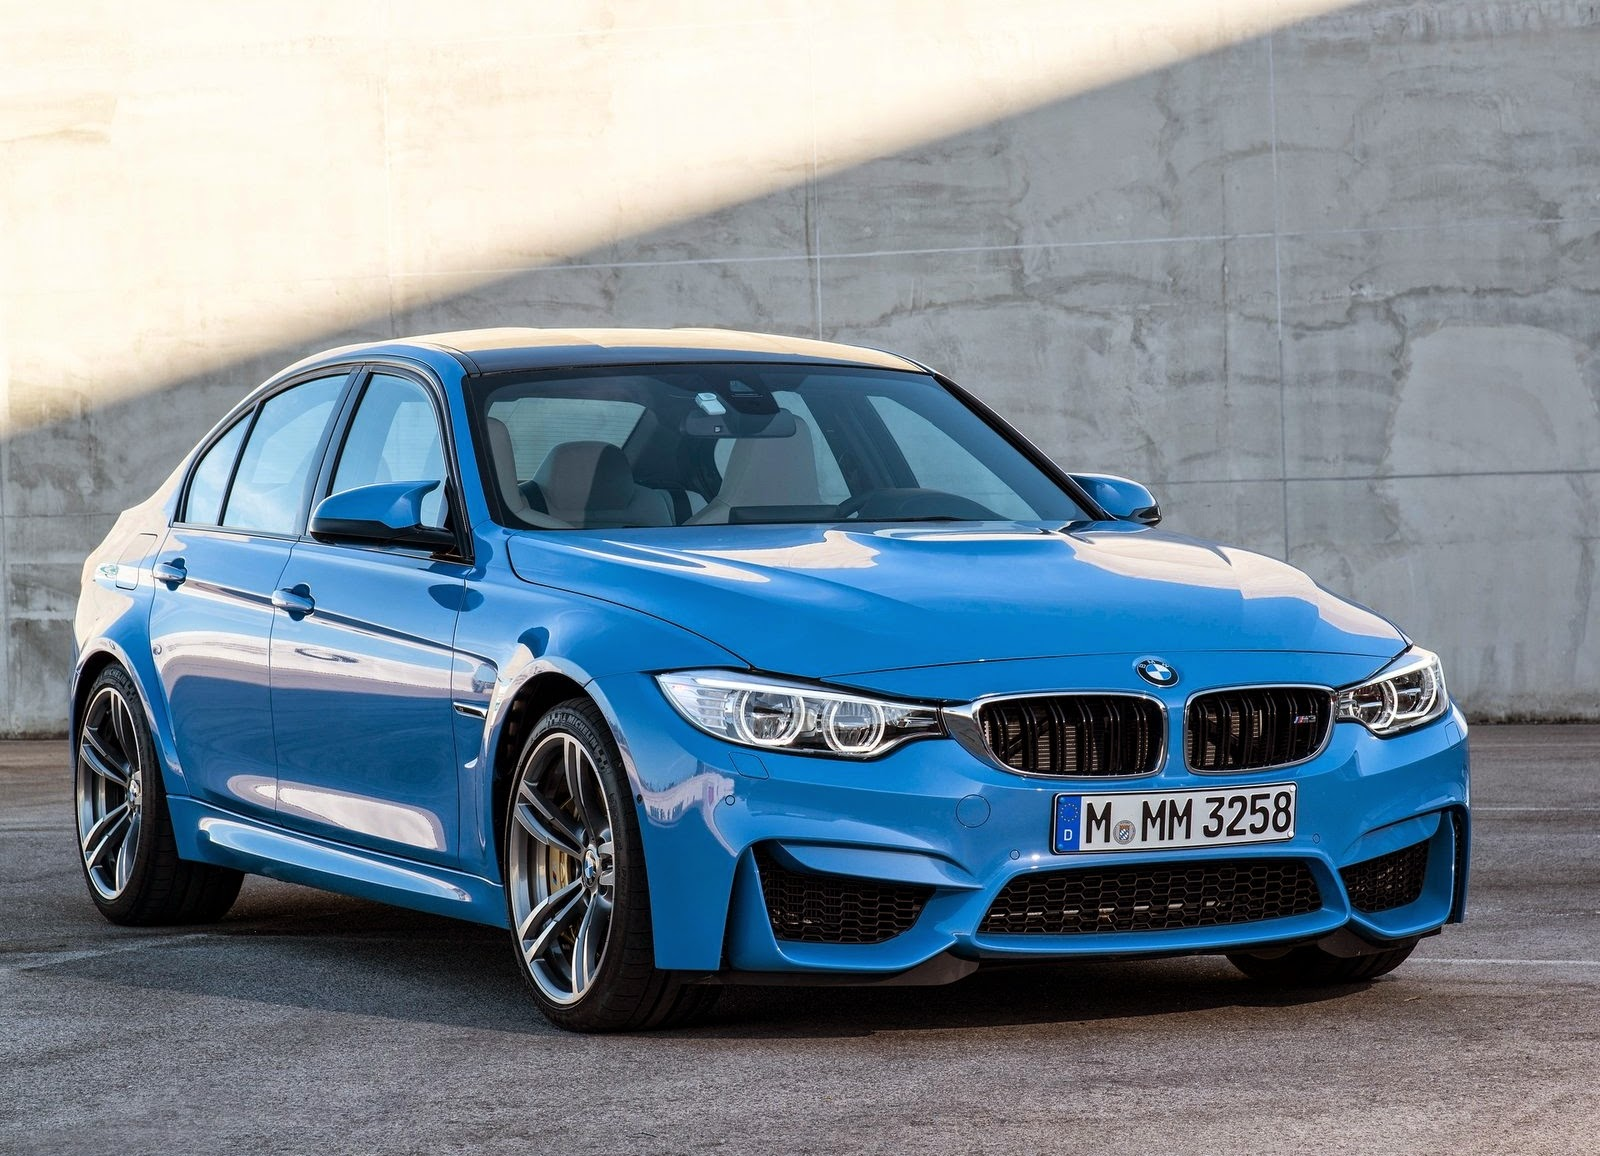 bmw m3 sedan blue 2015 car wallpaper car wallpaper hd